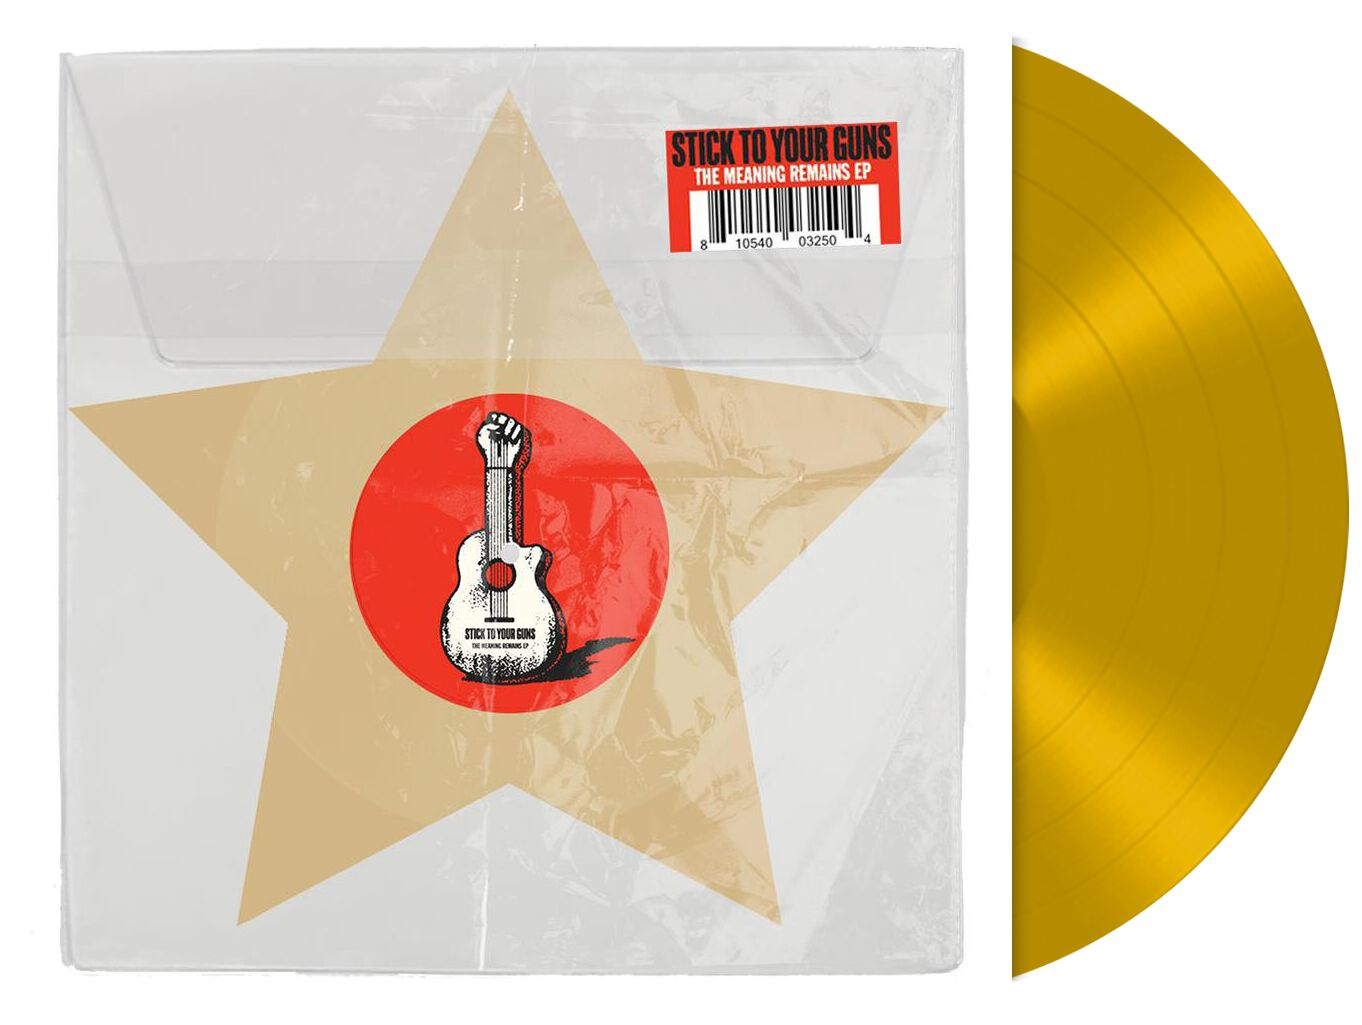 Image of Stick To Your Guns The meaning remains 12 inch-Single goldfarben